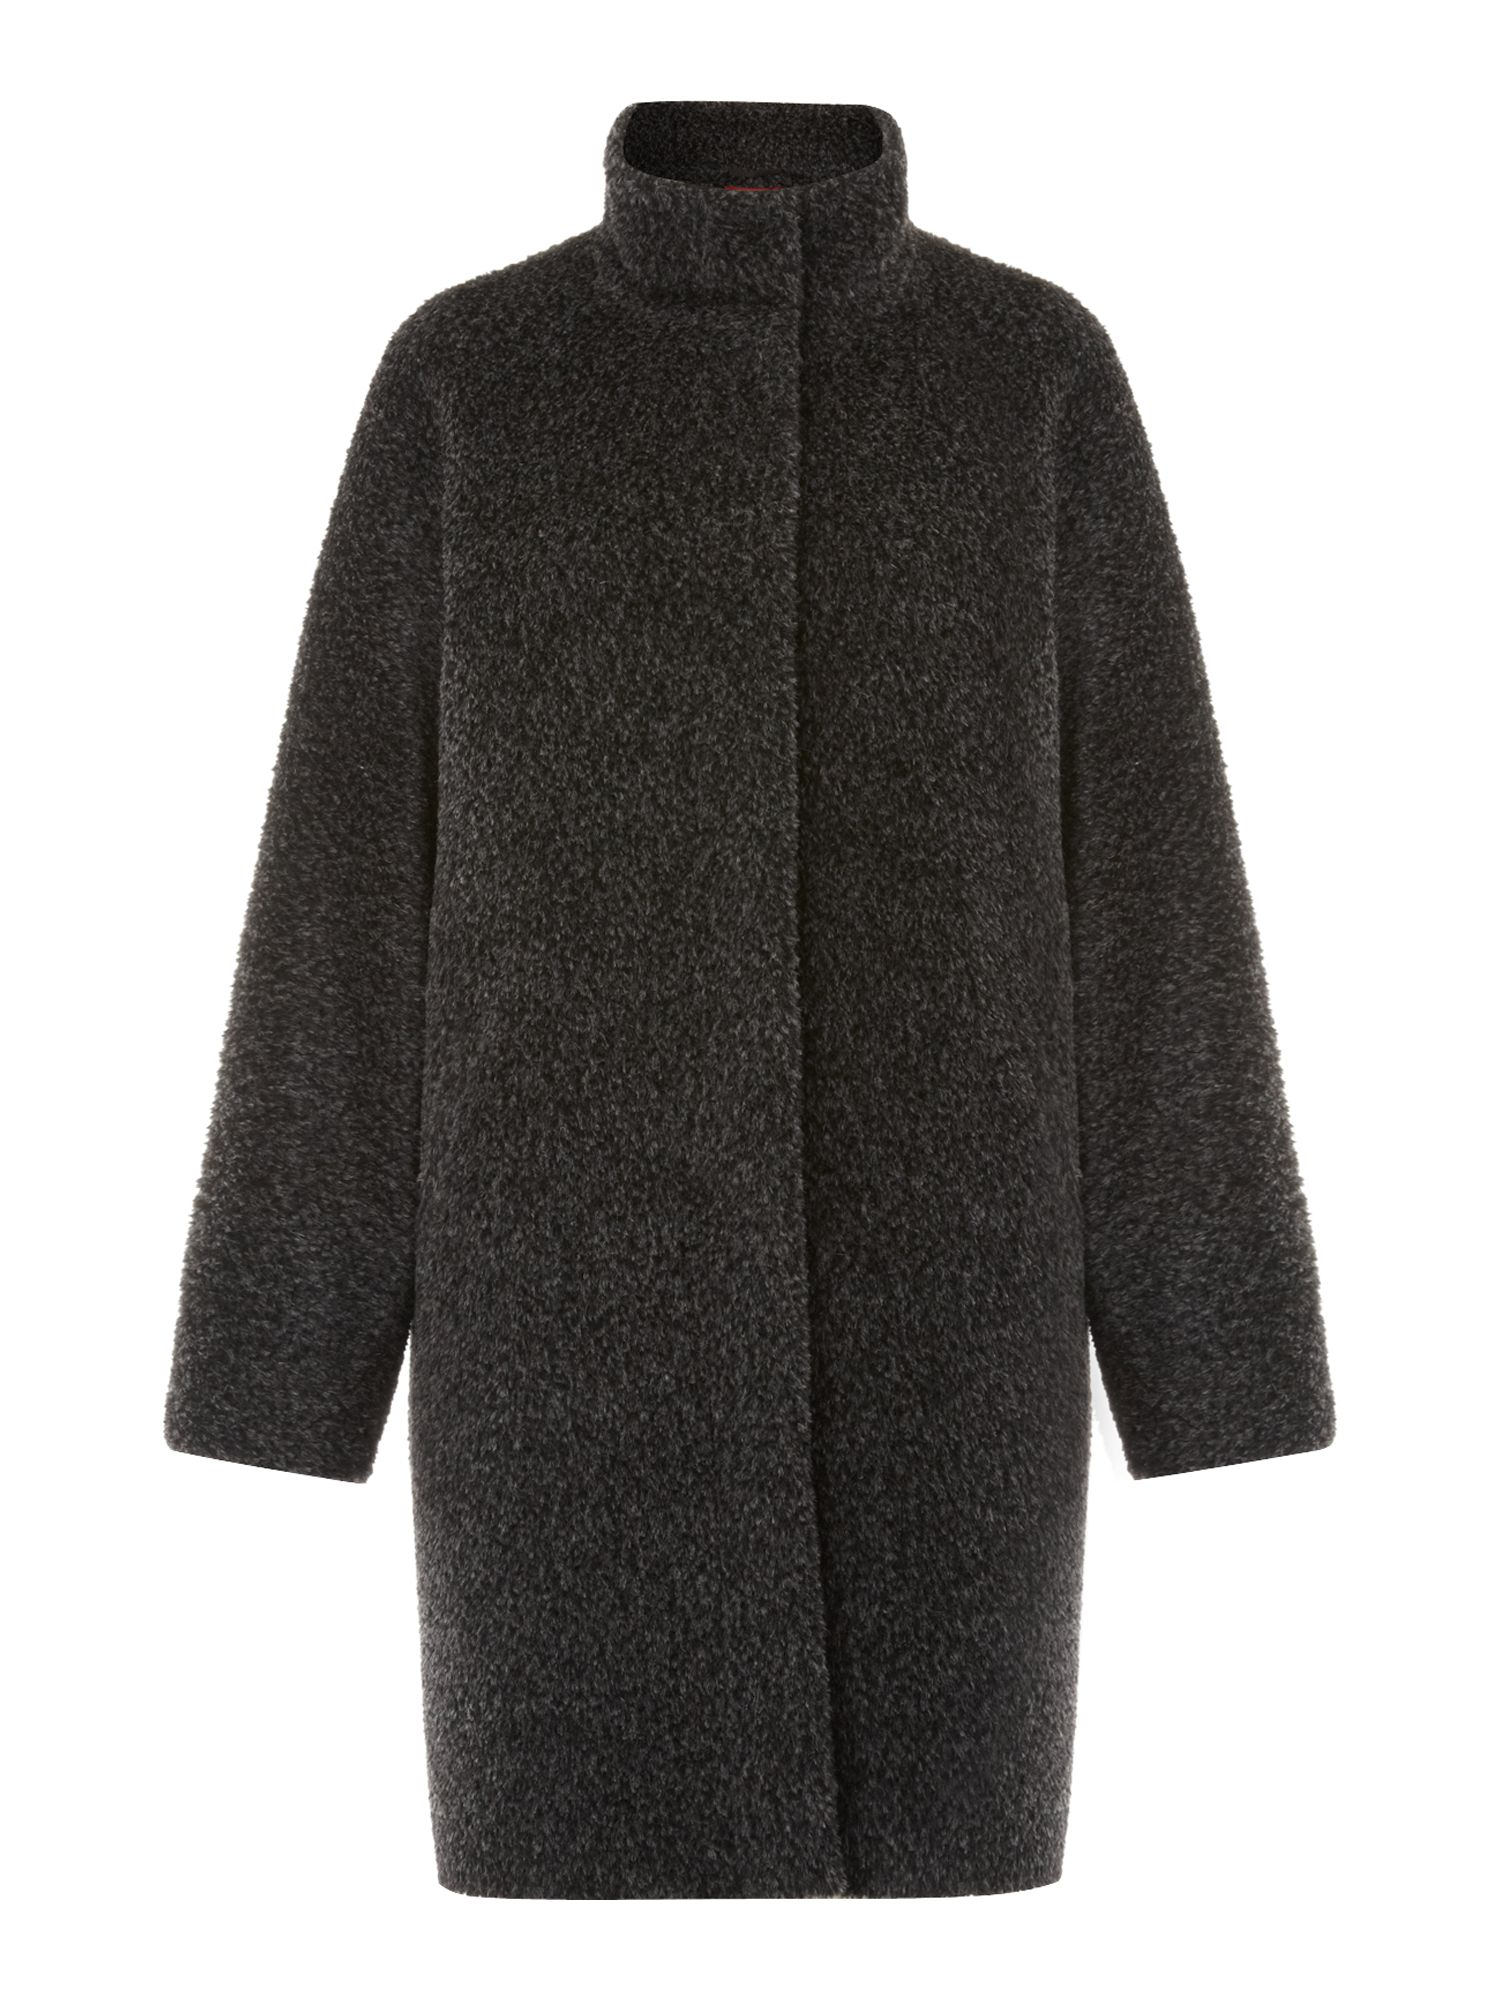 Giubilo funnel neck coat